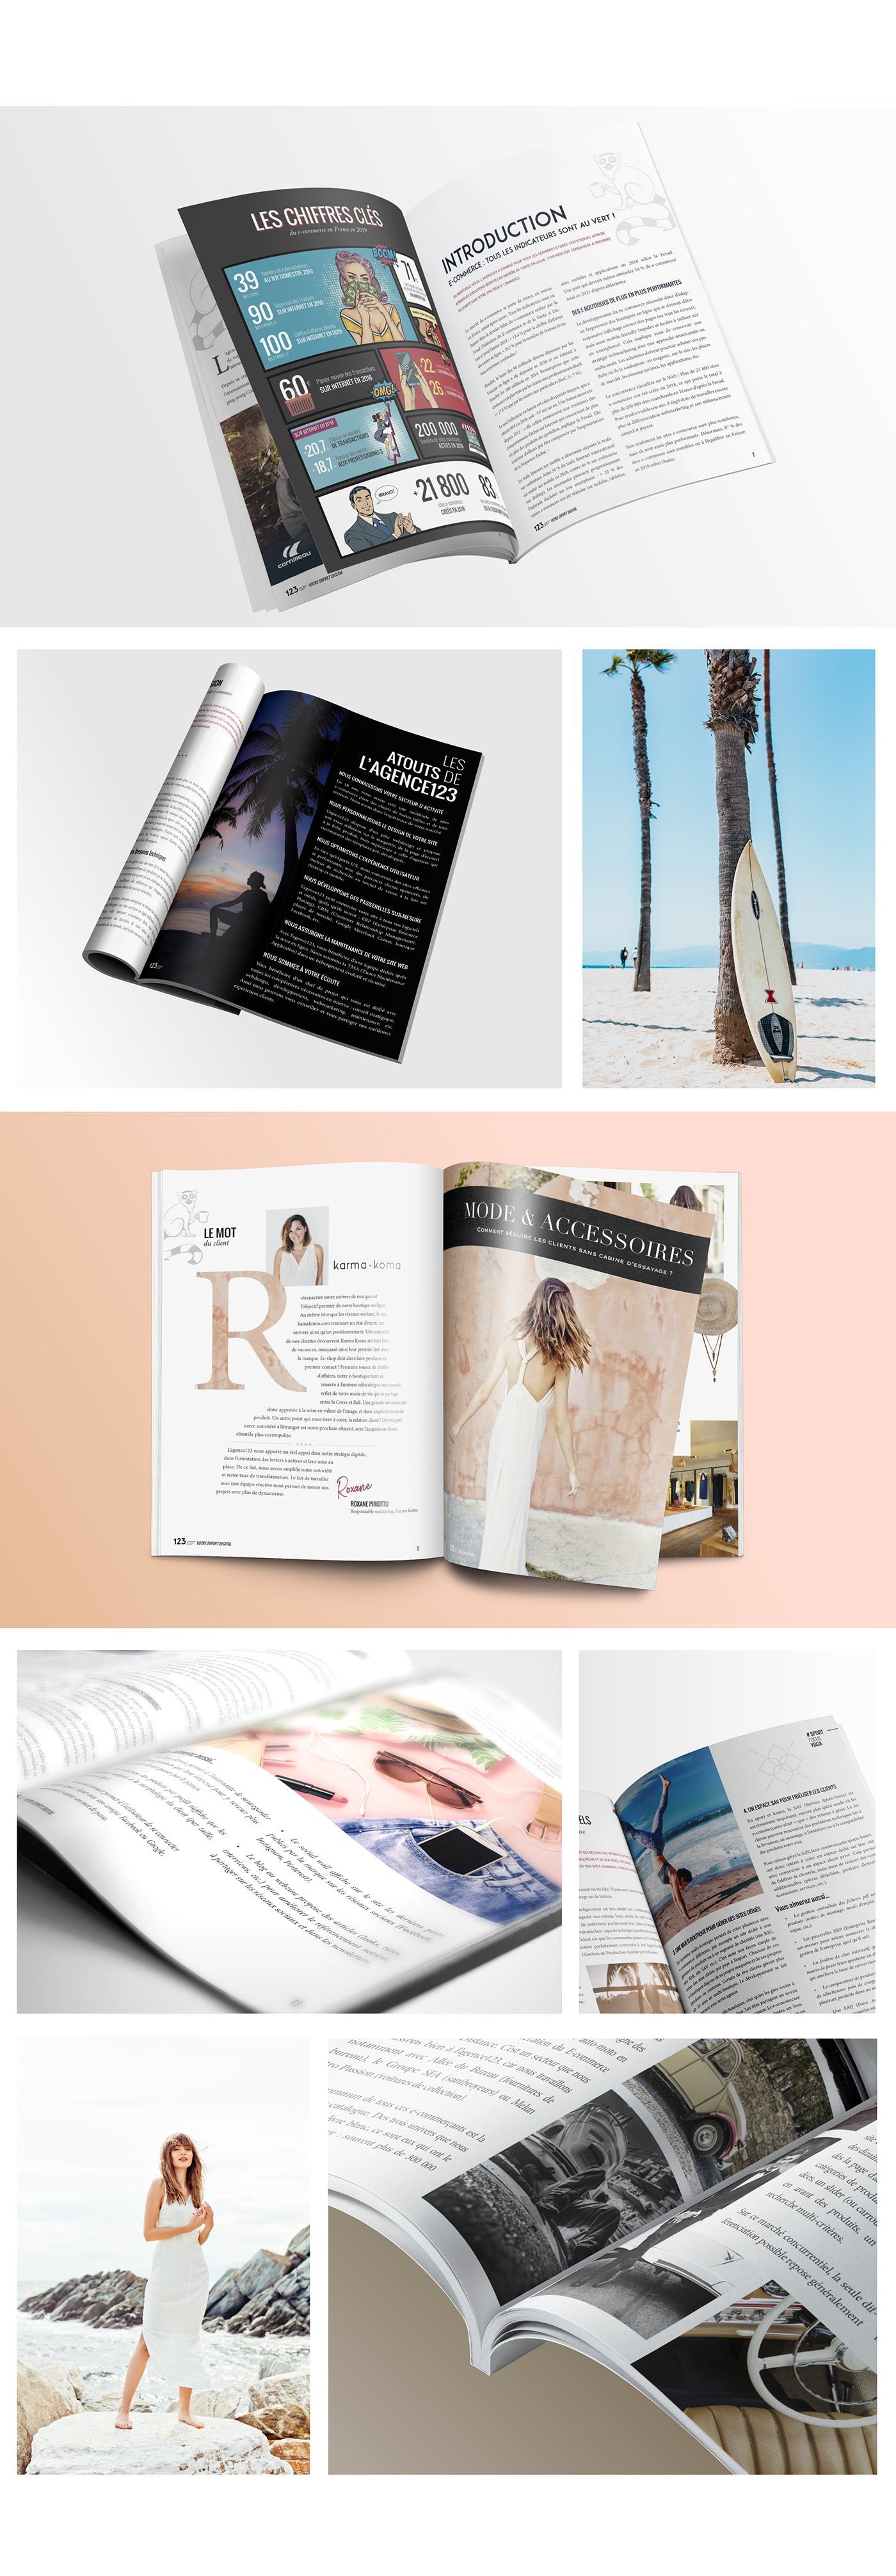 editorial graphic design  Fashion  typography   magazine Photography  color